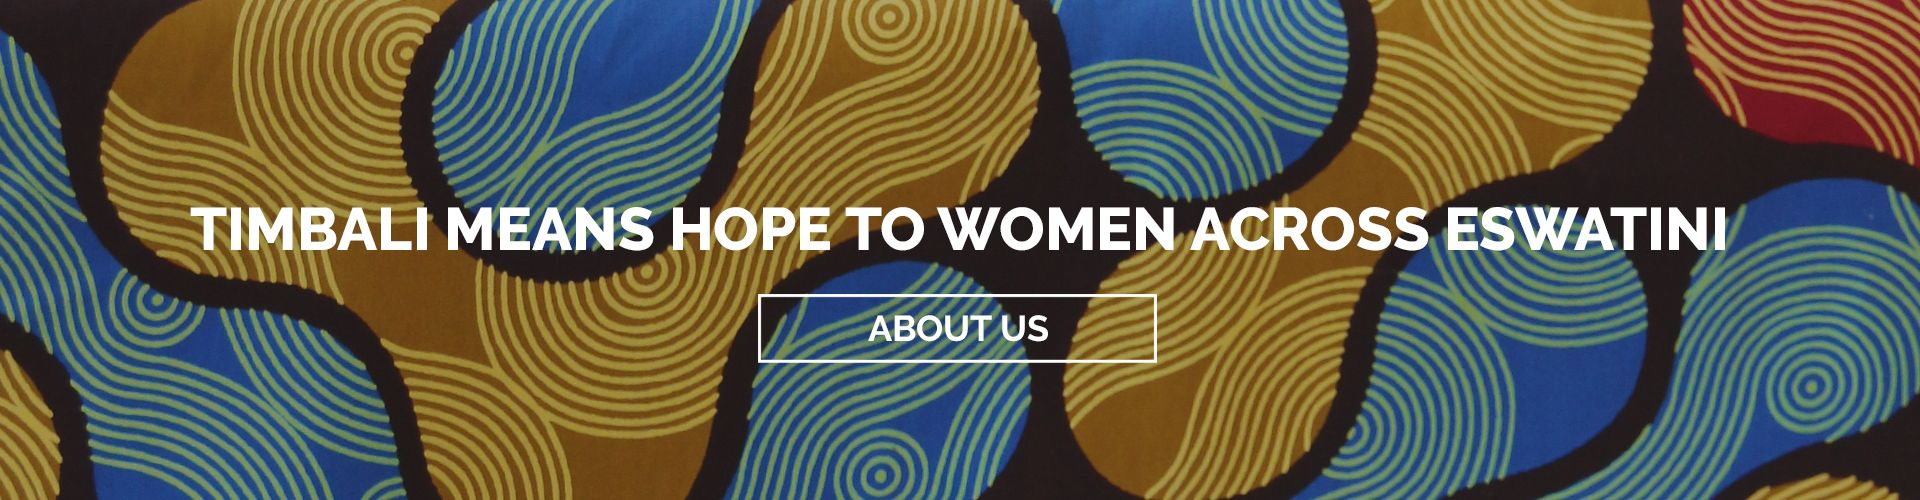 Timbali means hope to women across Eswatini